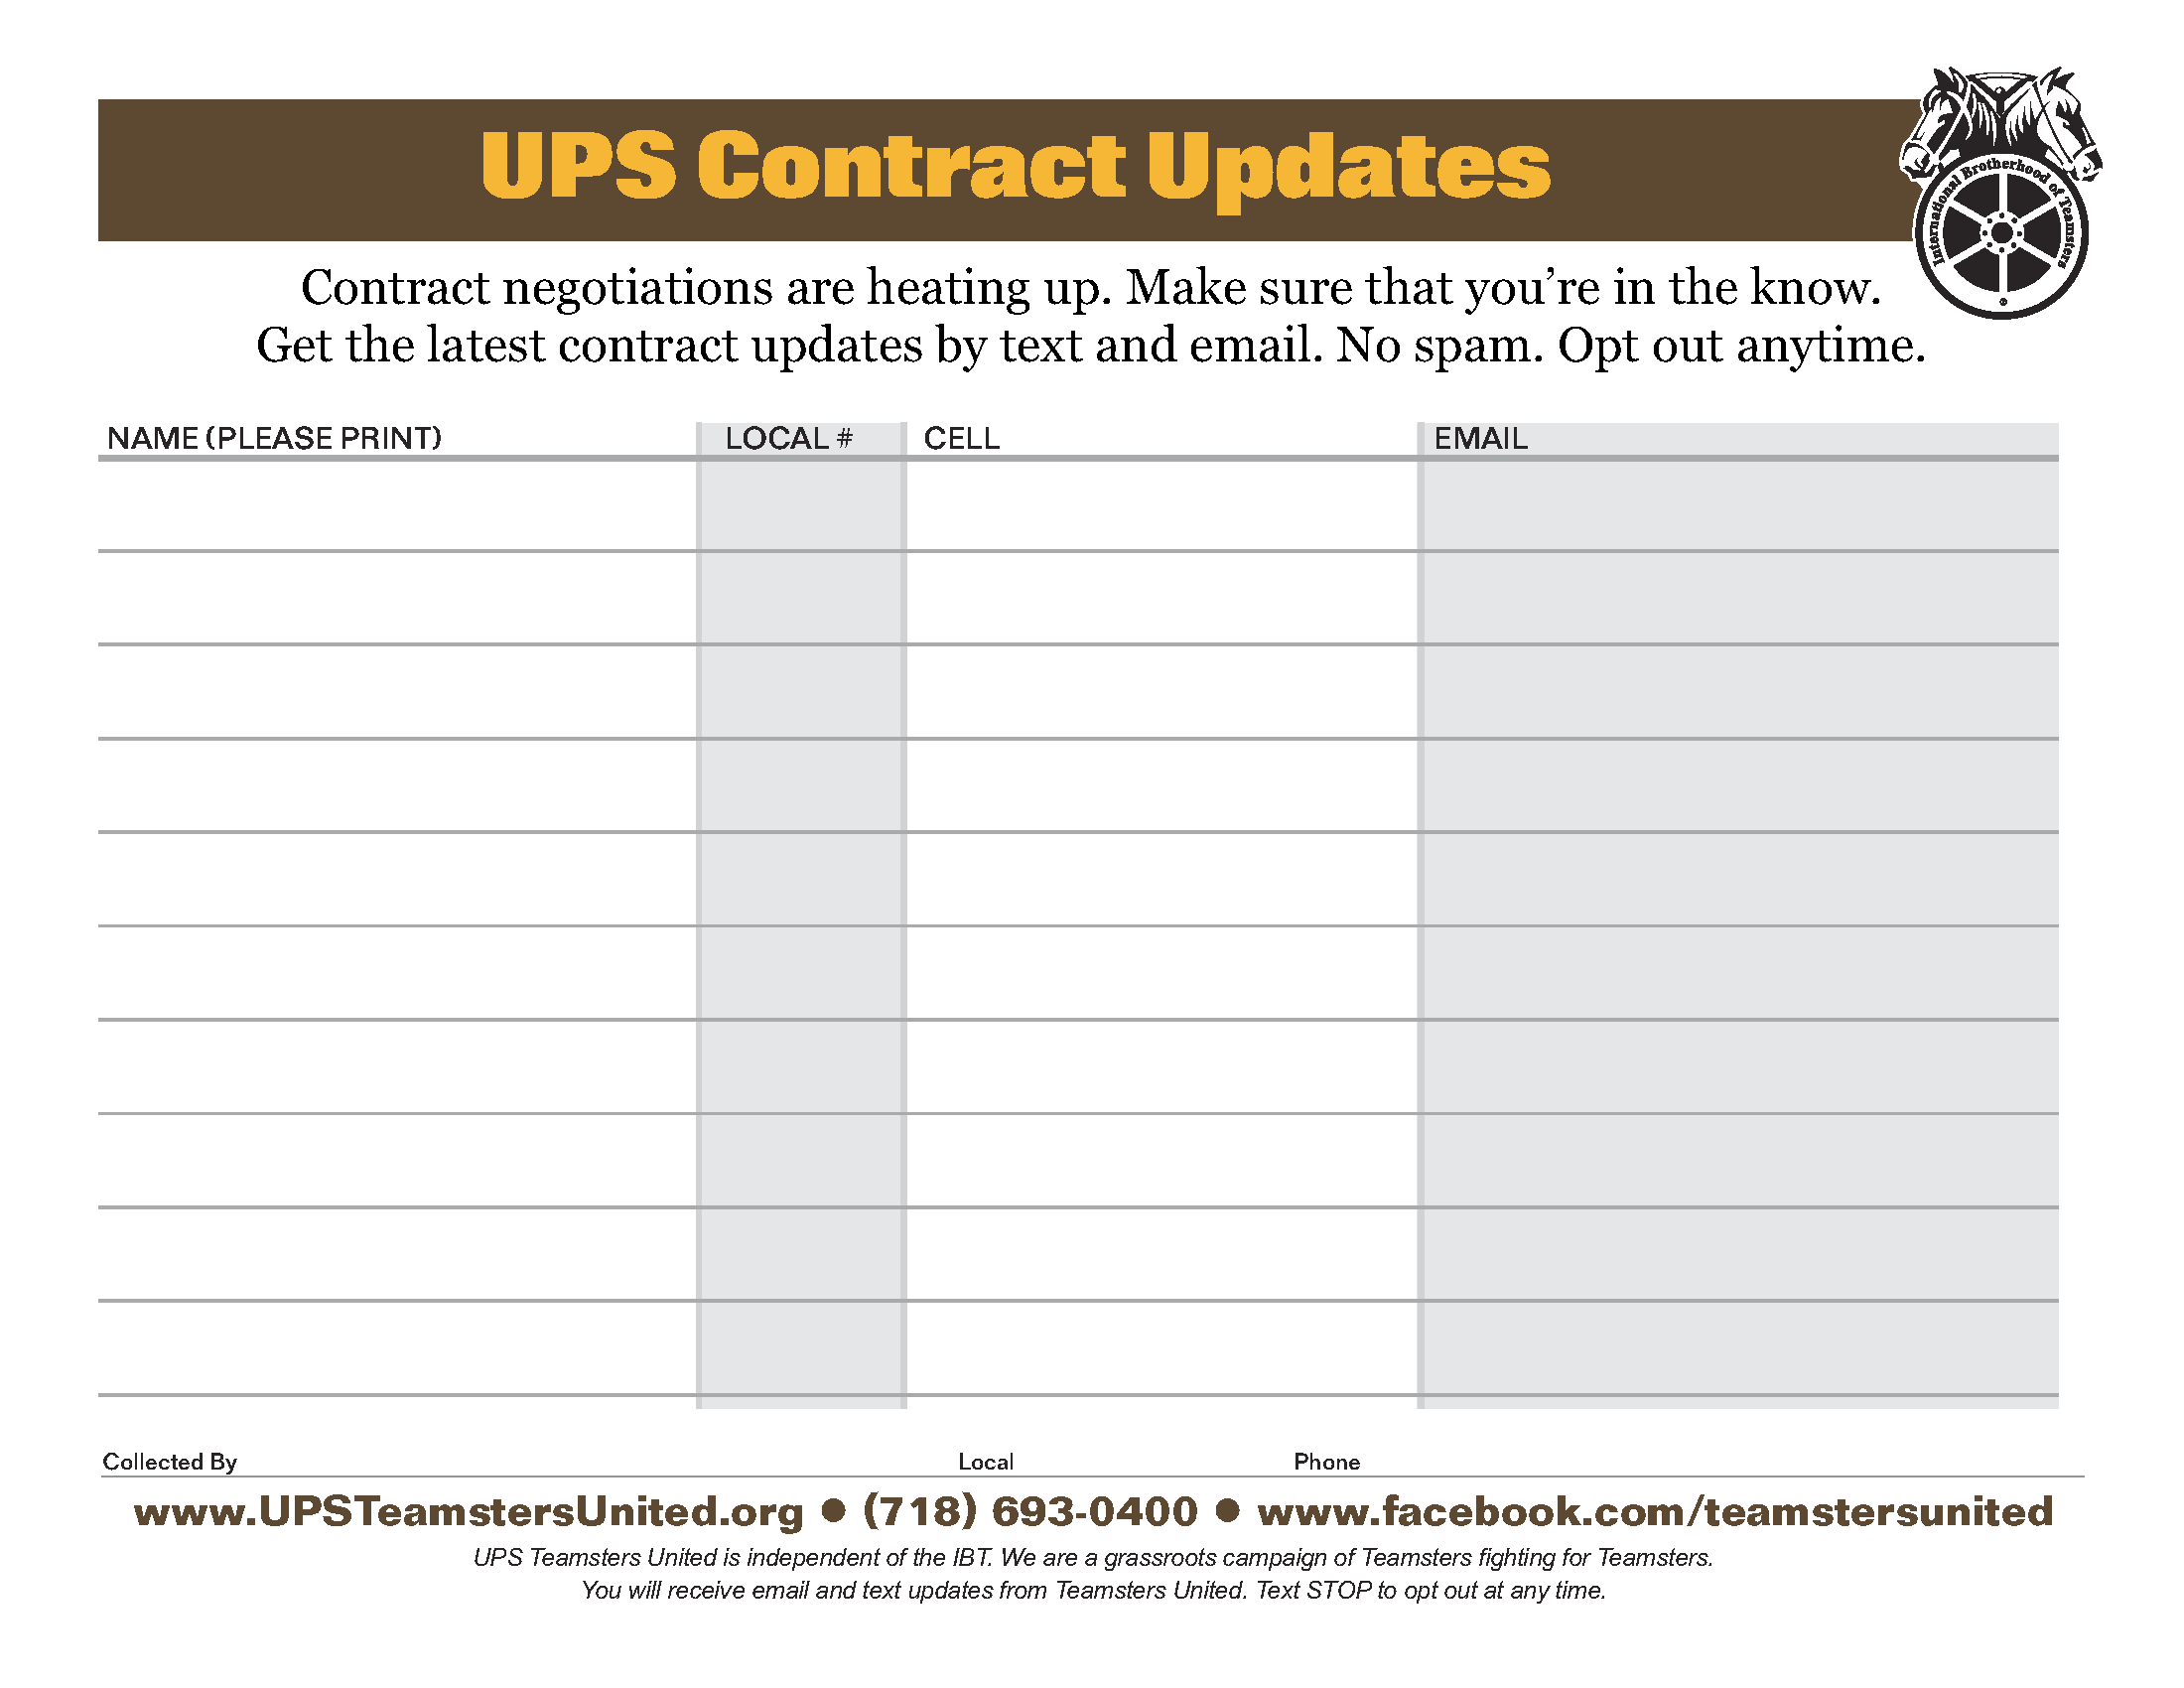 UPS-Contract_Updates-Sign-Up.png